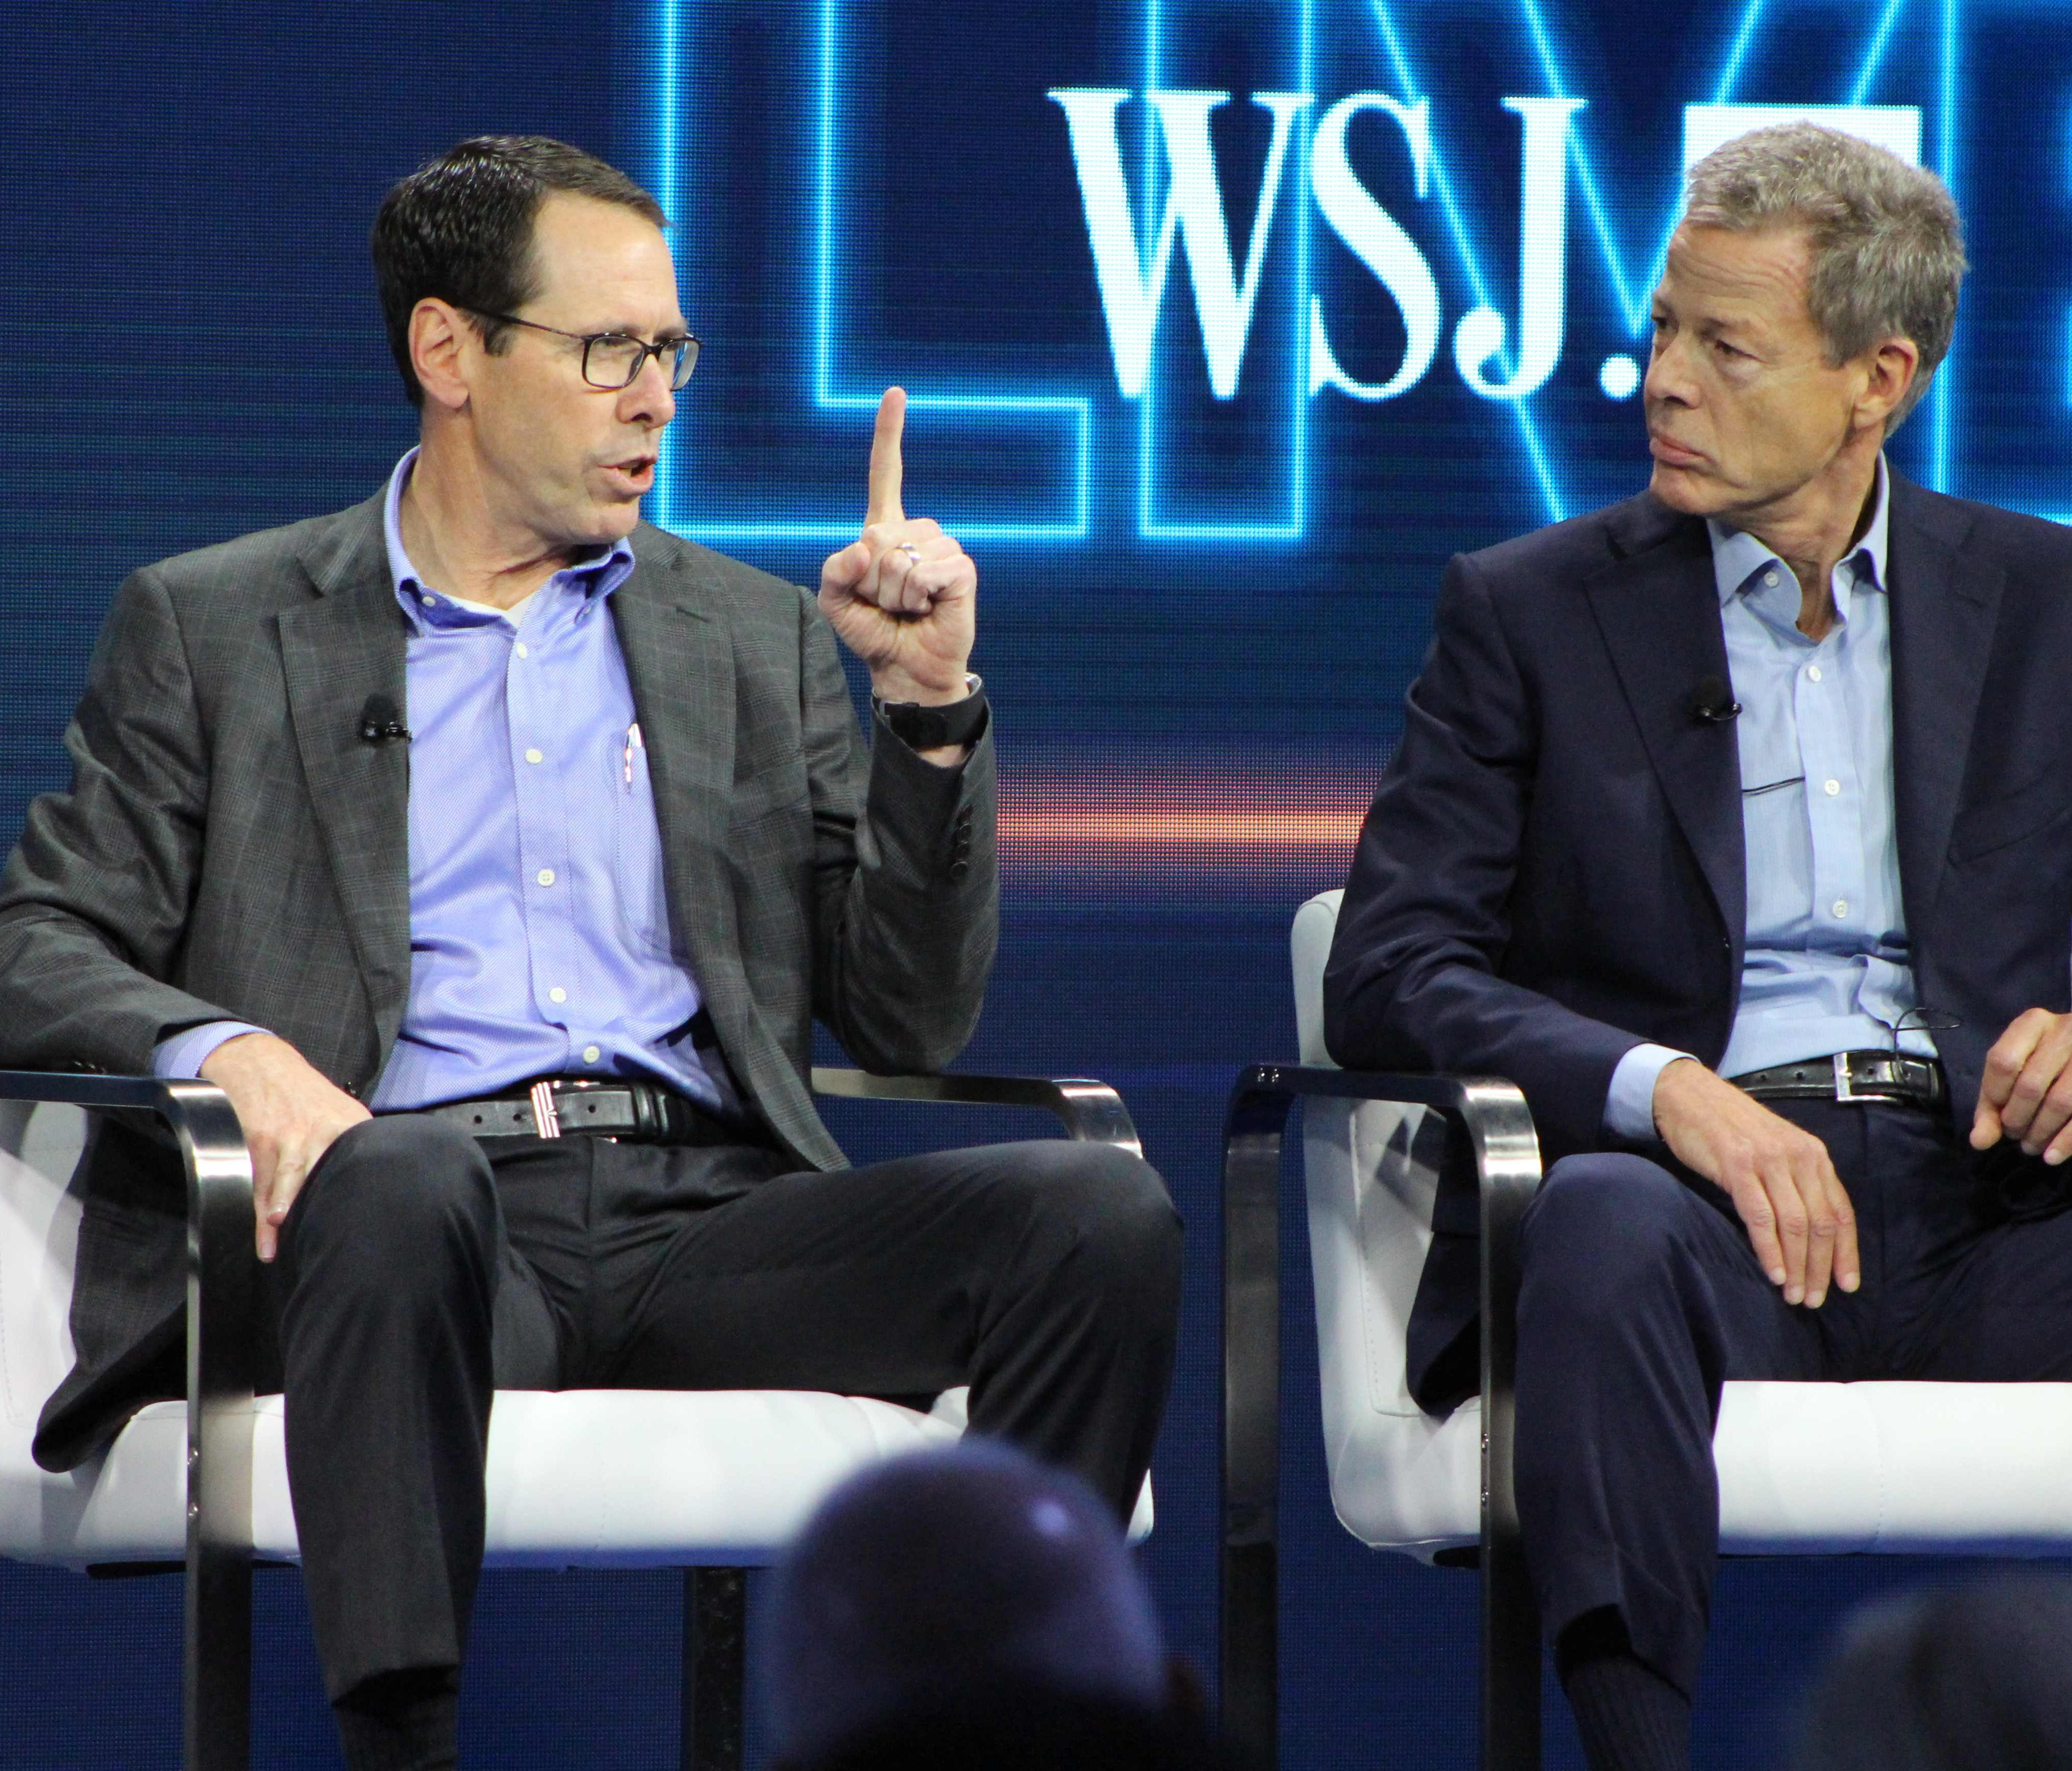 AT&T chief executive Randall Stephenson, left,  and Time Warner chief executive Jeffrey Bewkes defend the proposed mega-merger of the companies at a WSJD Live technology conference in Laguna Beach, Calif., on Oct. 25, 2016.